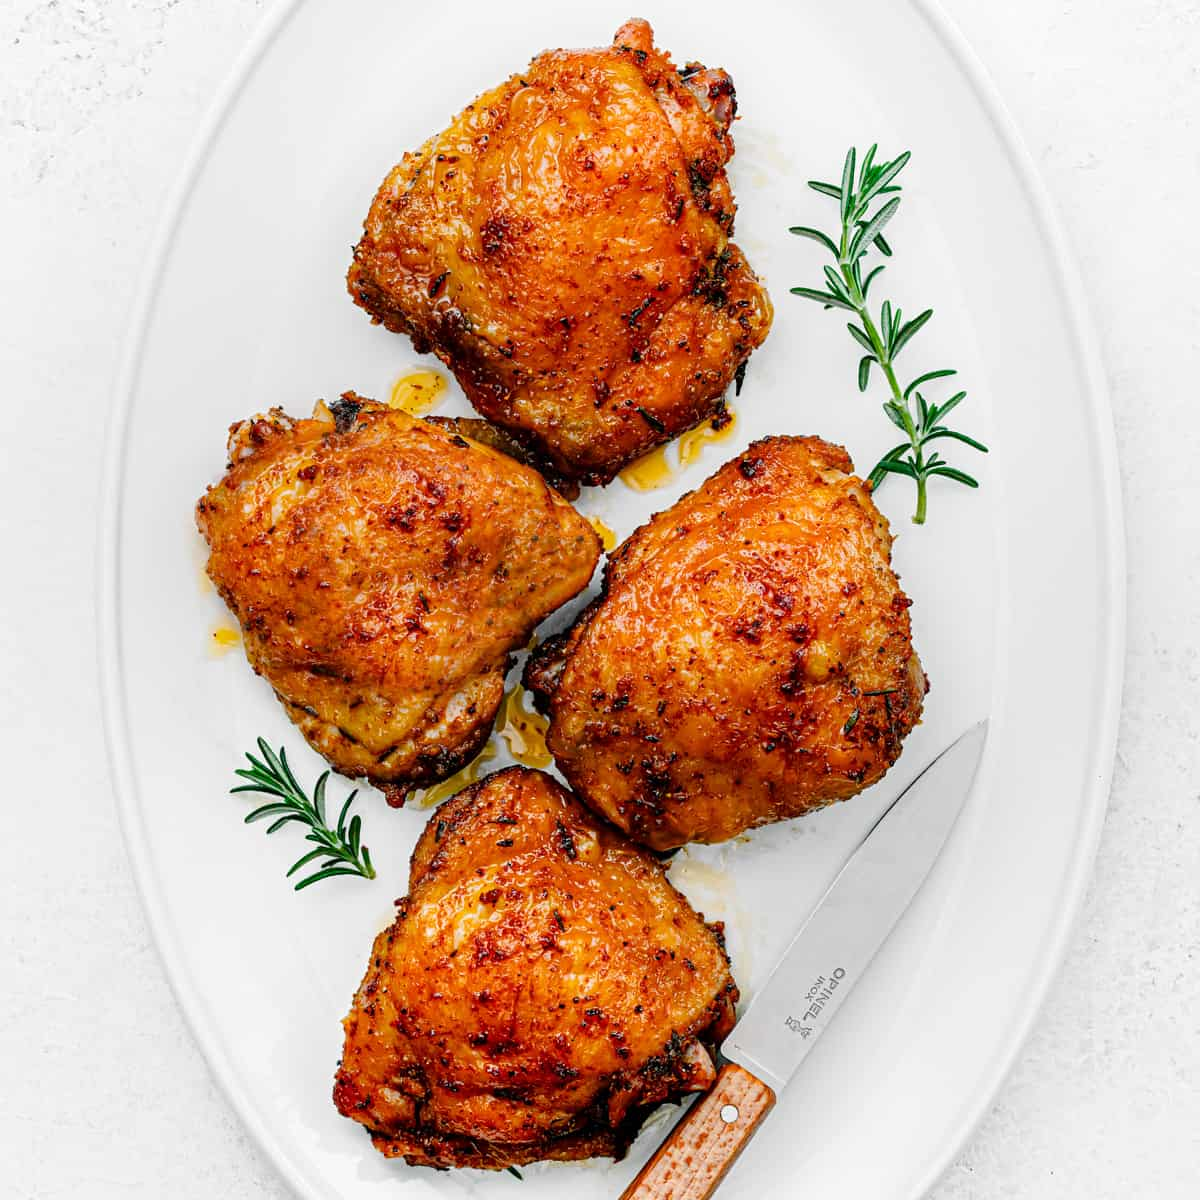 Rosemary Chicken Thighs Recipe